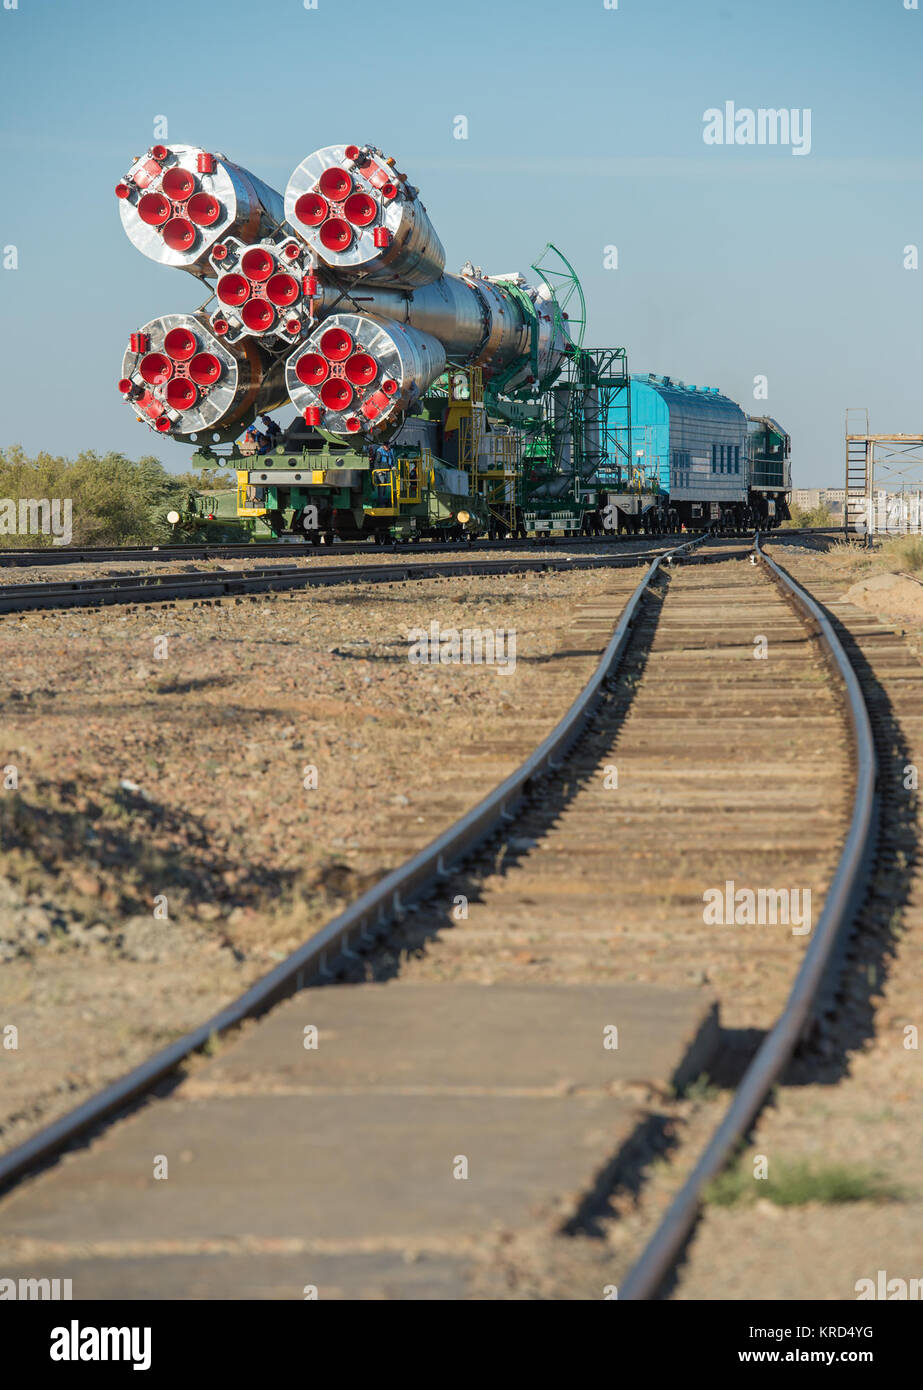 The Soyuz rocket is rolled out to the launch pad by train on Monday, Sept. 23, 2013, at the Baikonur Cosmodrome - Stock Image